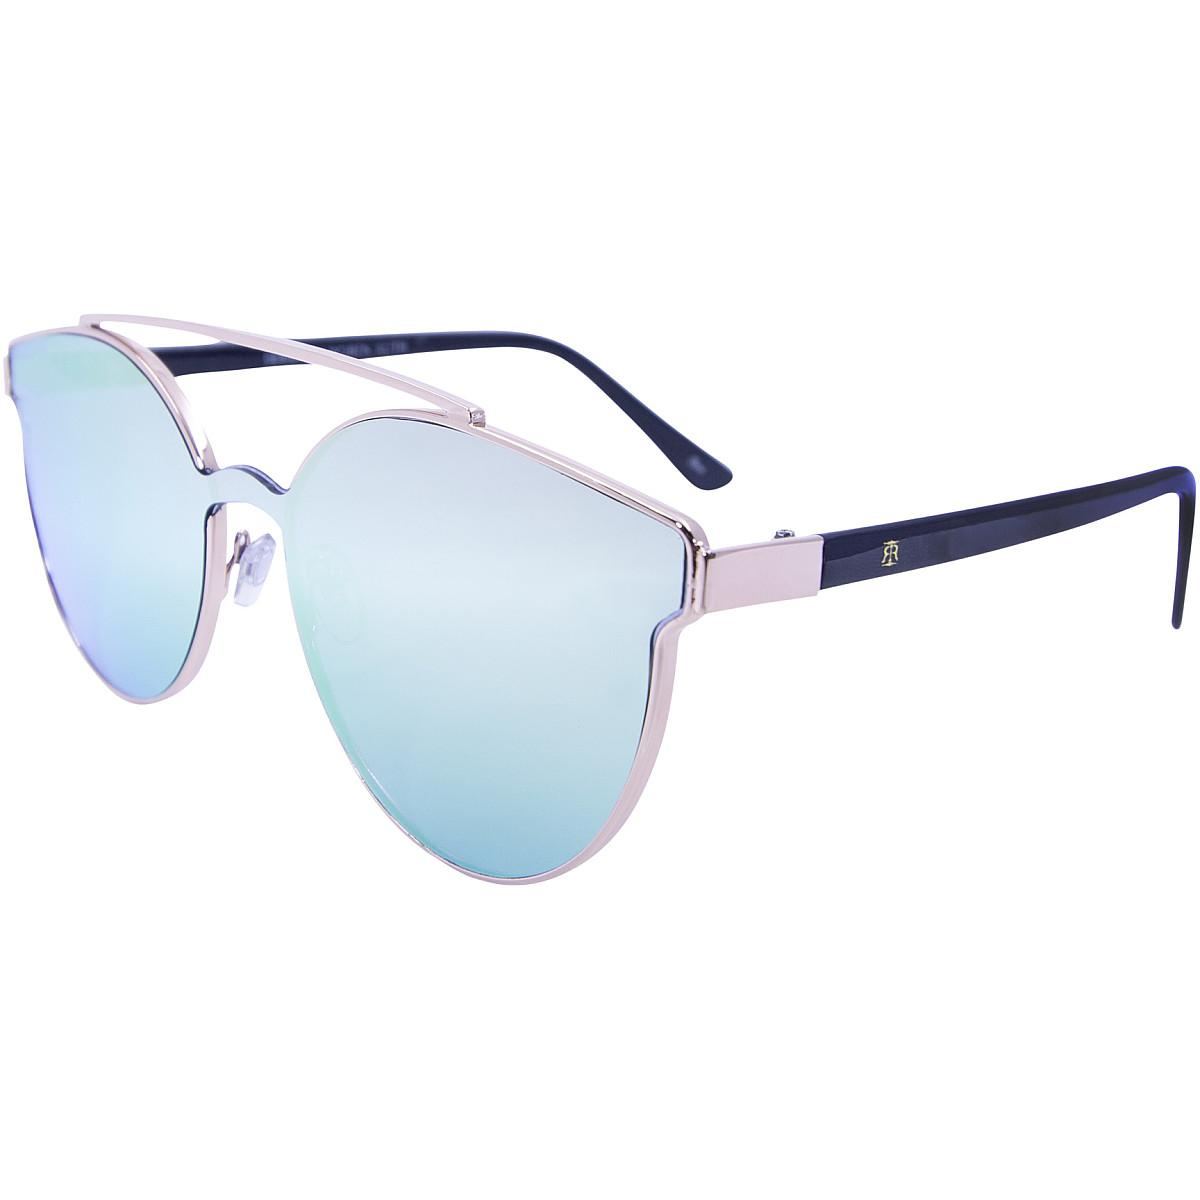 Sunglasses Tulsa Limited Robin Ruth Collection Pink Designer 8nv0NOmwy